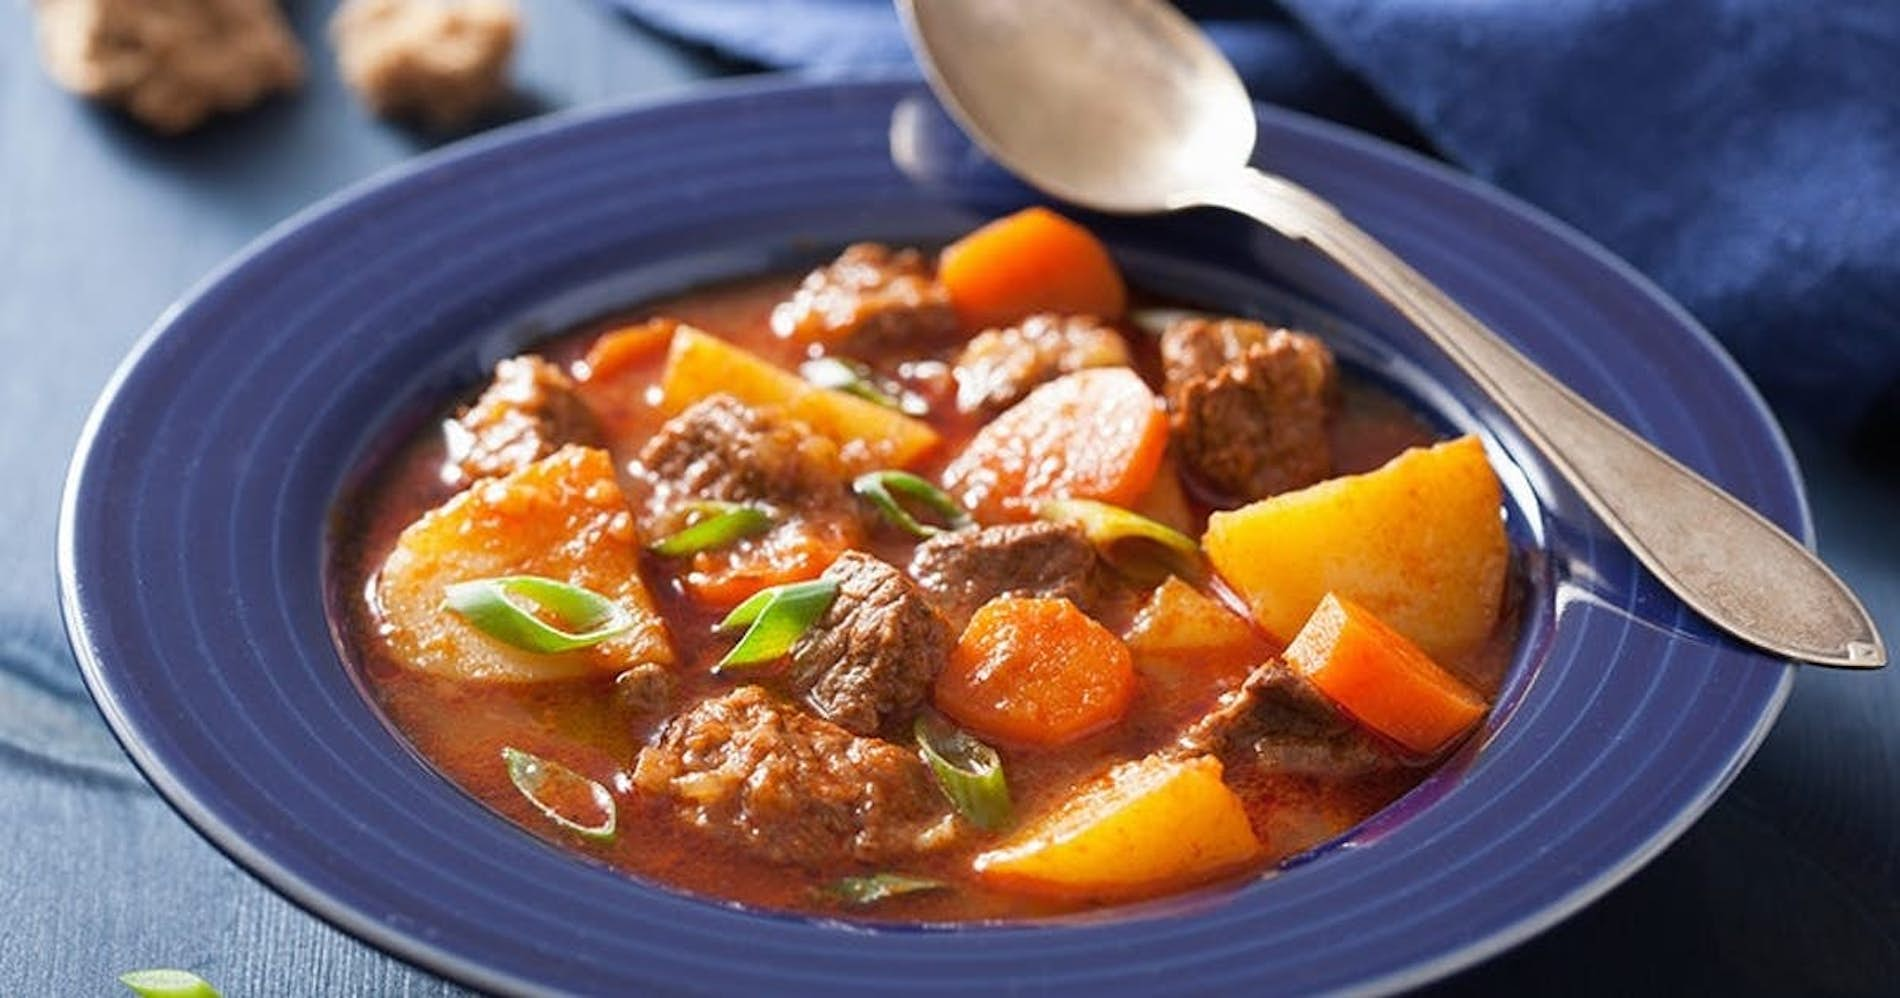 Classic Holiday Braised Beef Stew